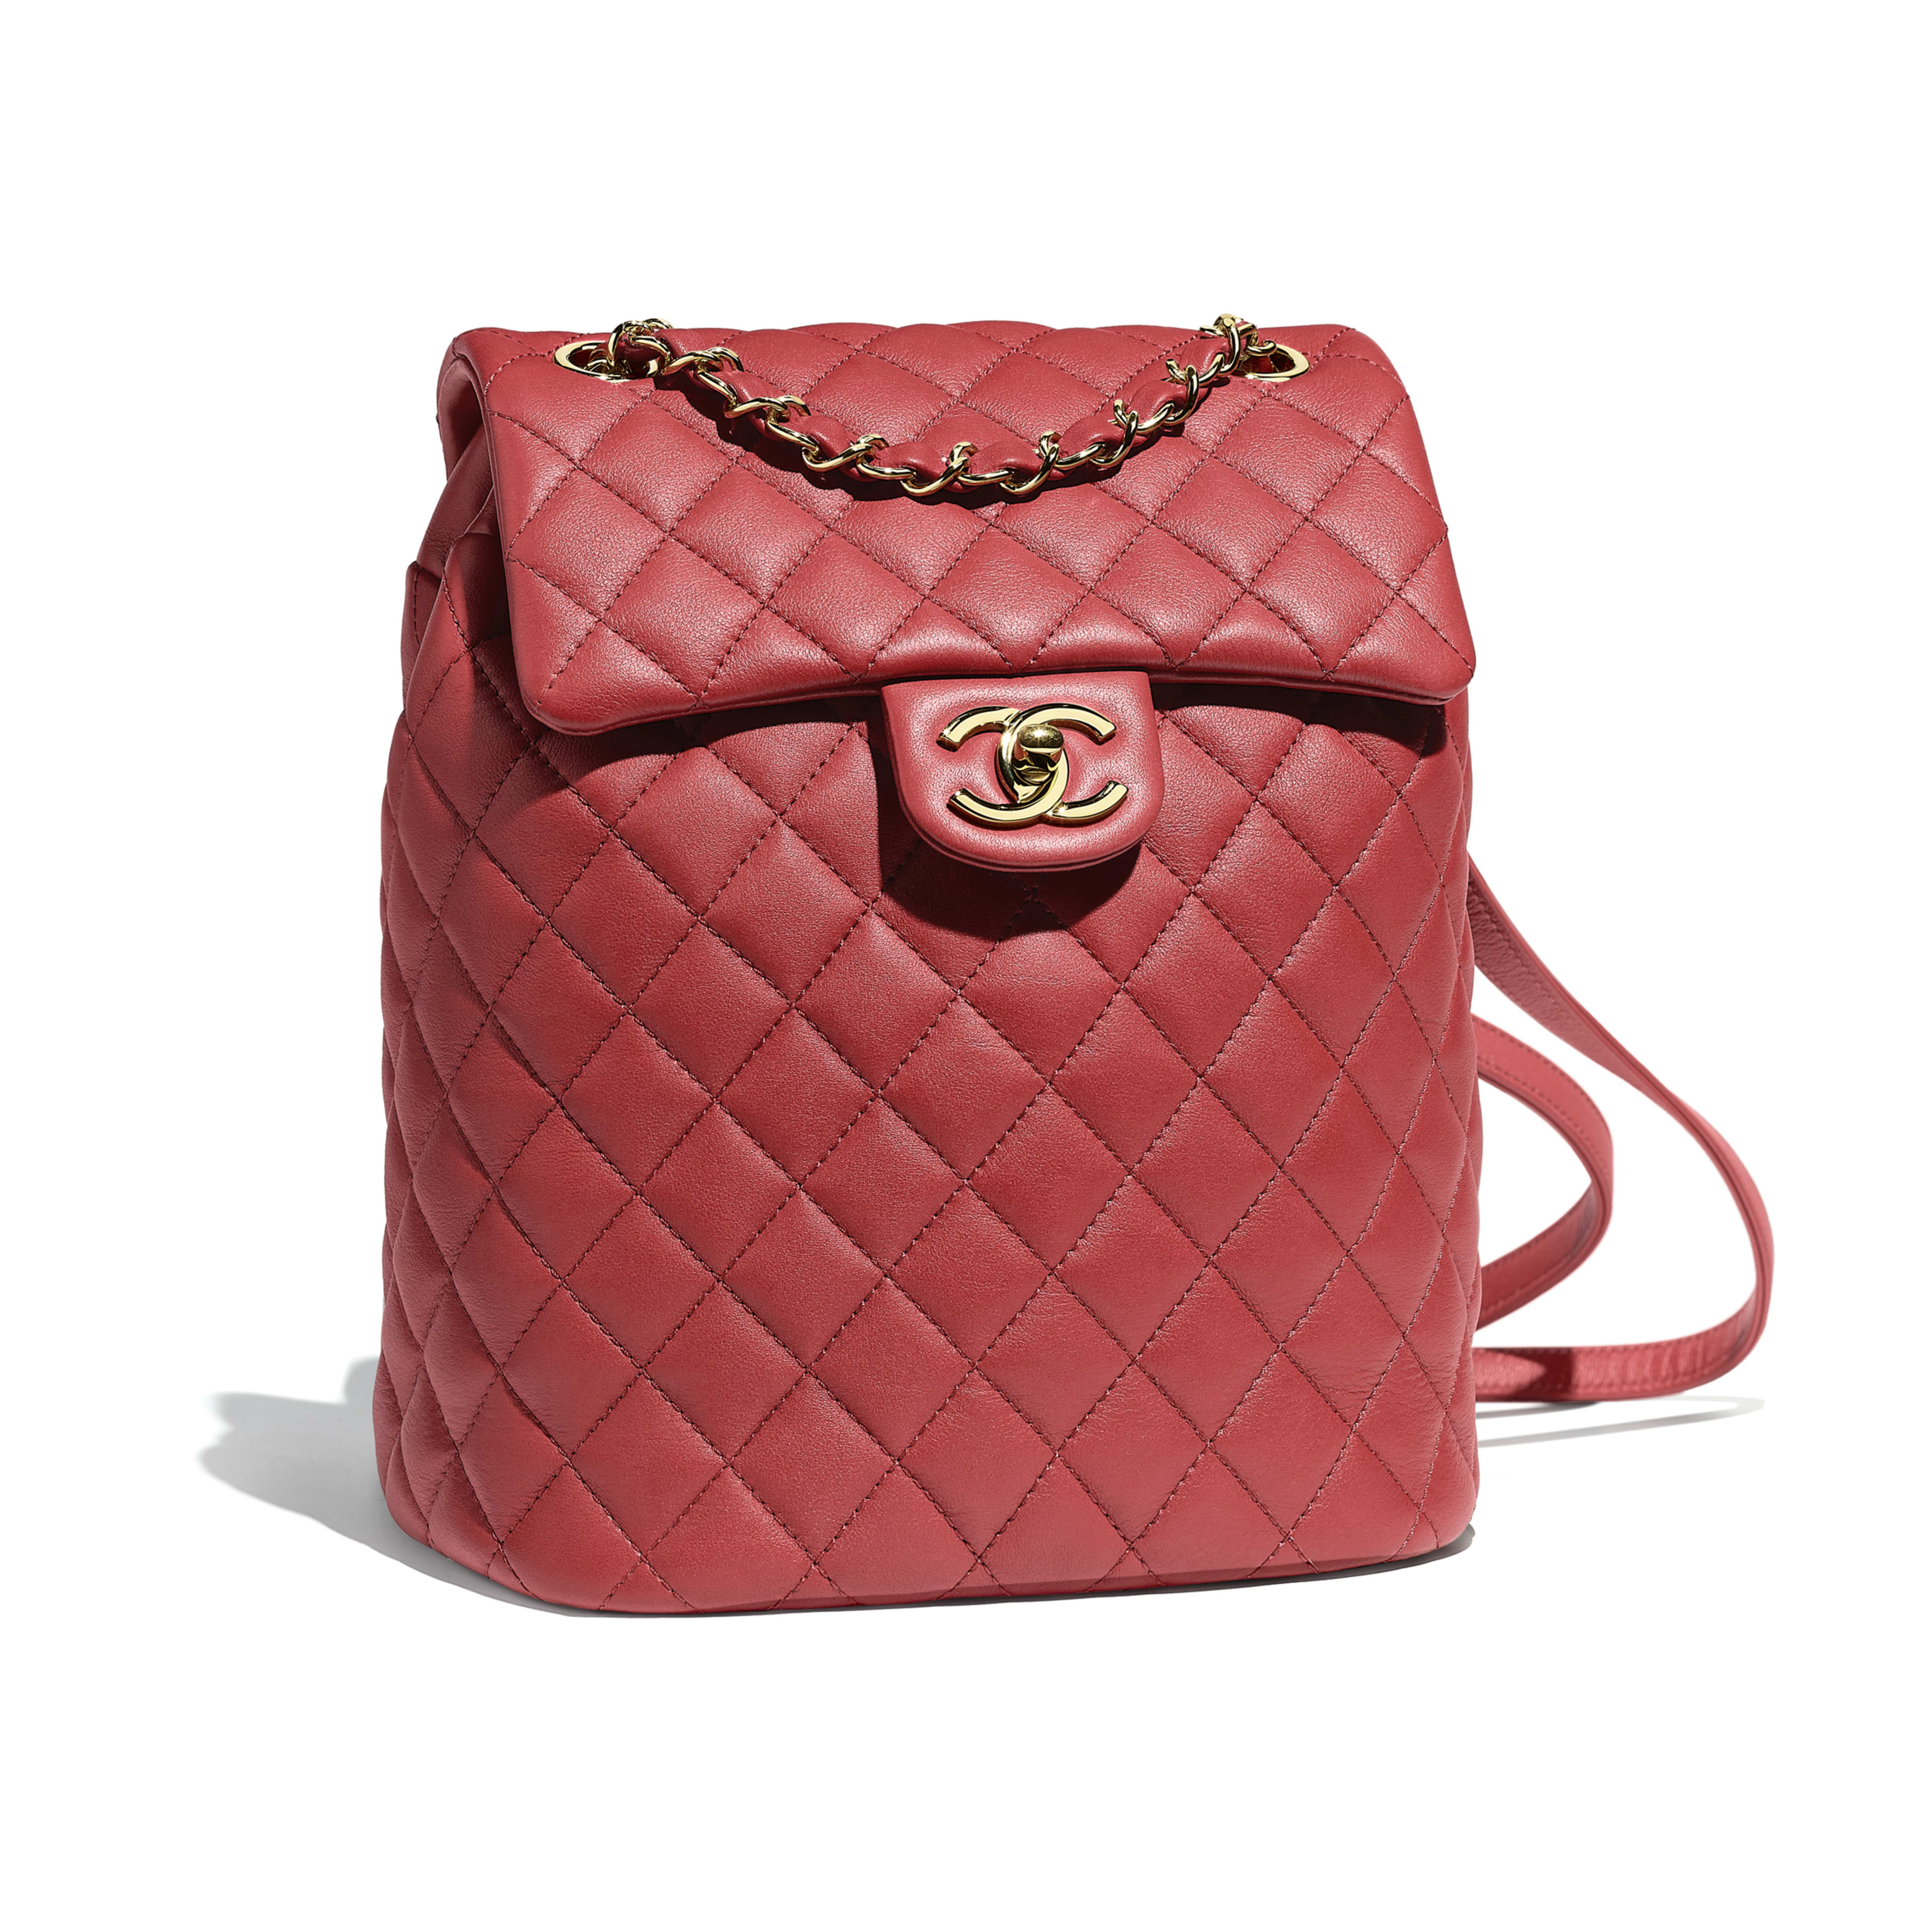 Backpack - Red - Calfskin & Gold-Tone Metal - Default view - see full sized version